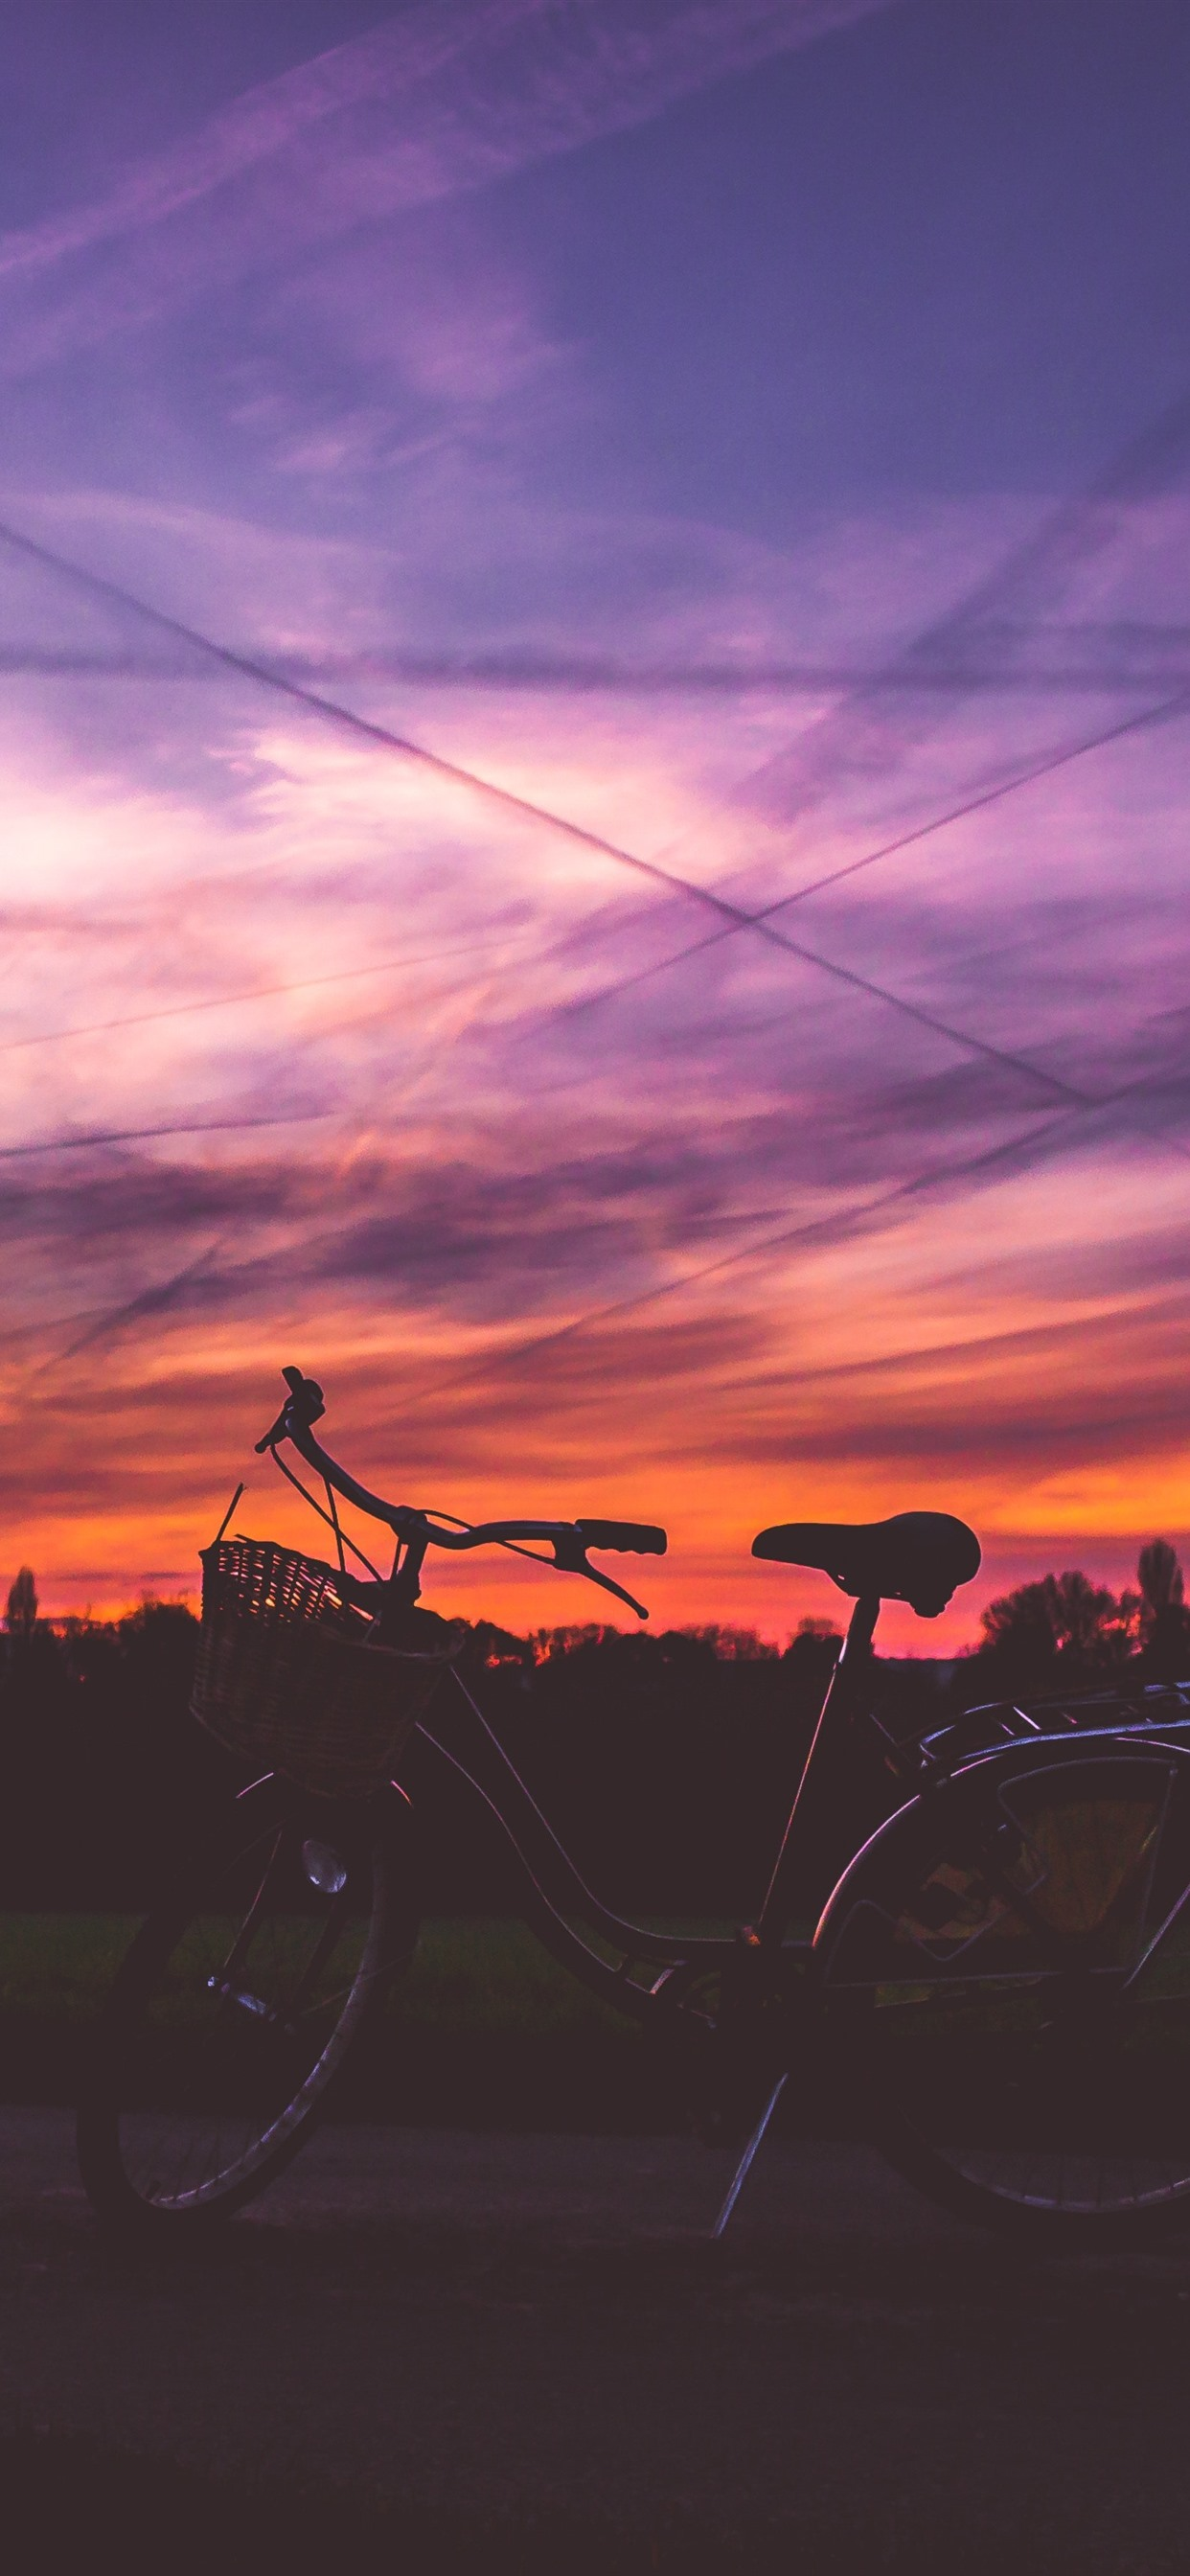 Wallpaper Bike Sunset Red Sky 5120x2880 Uhd 5k Picture Image